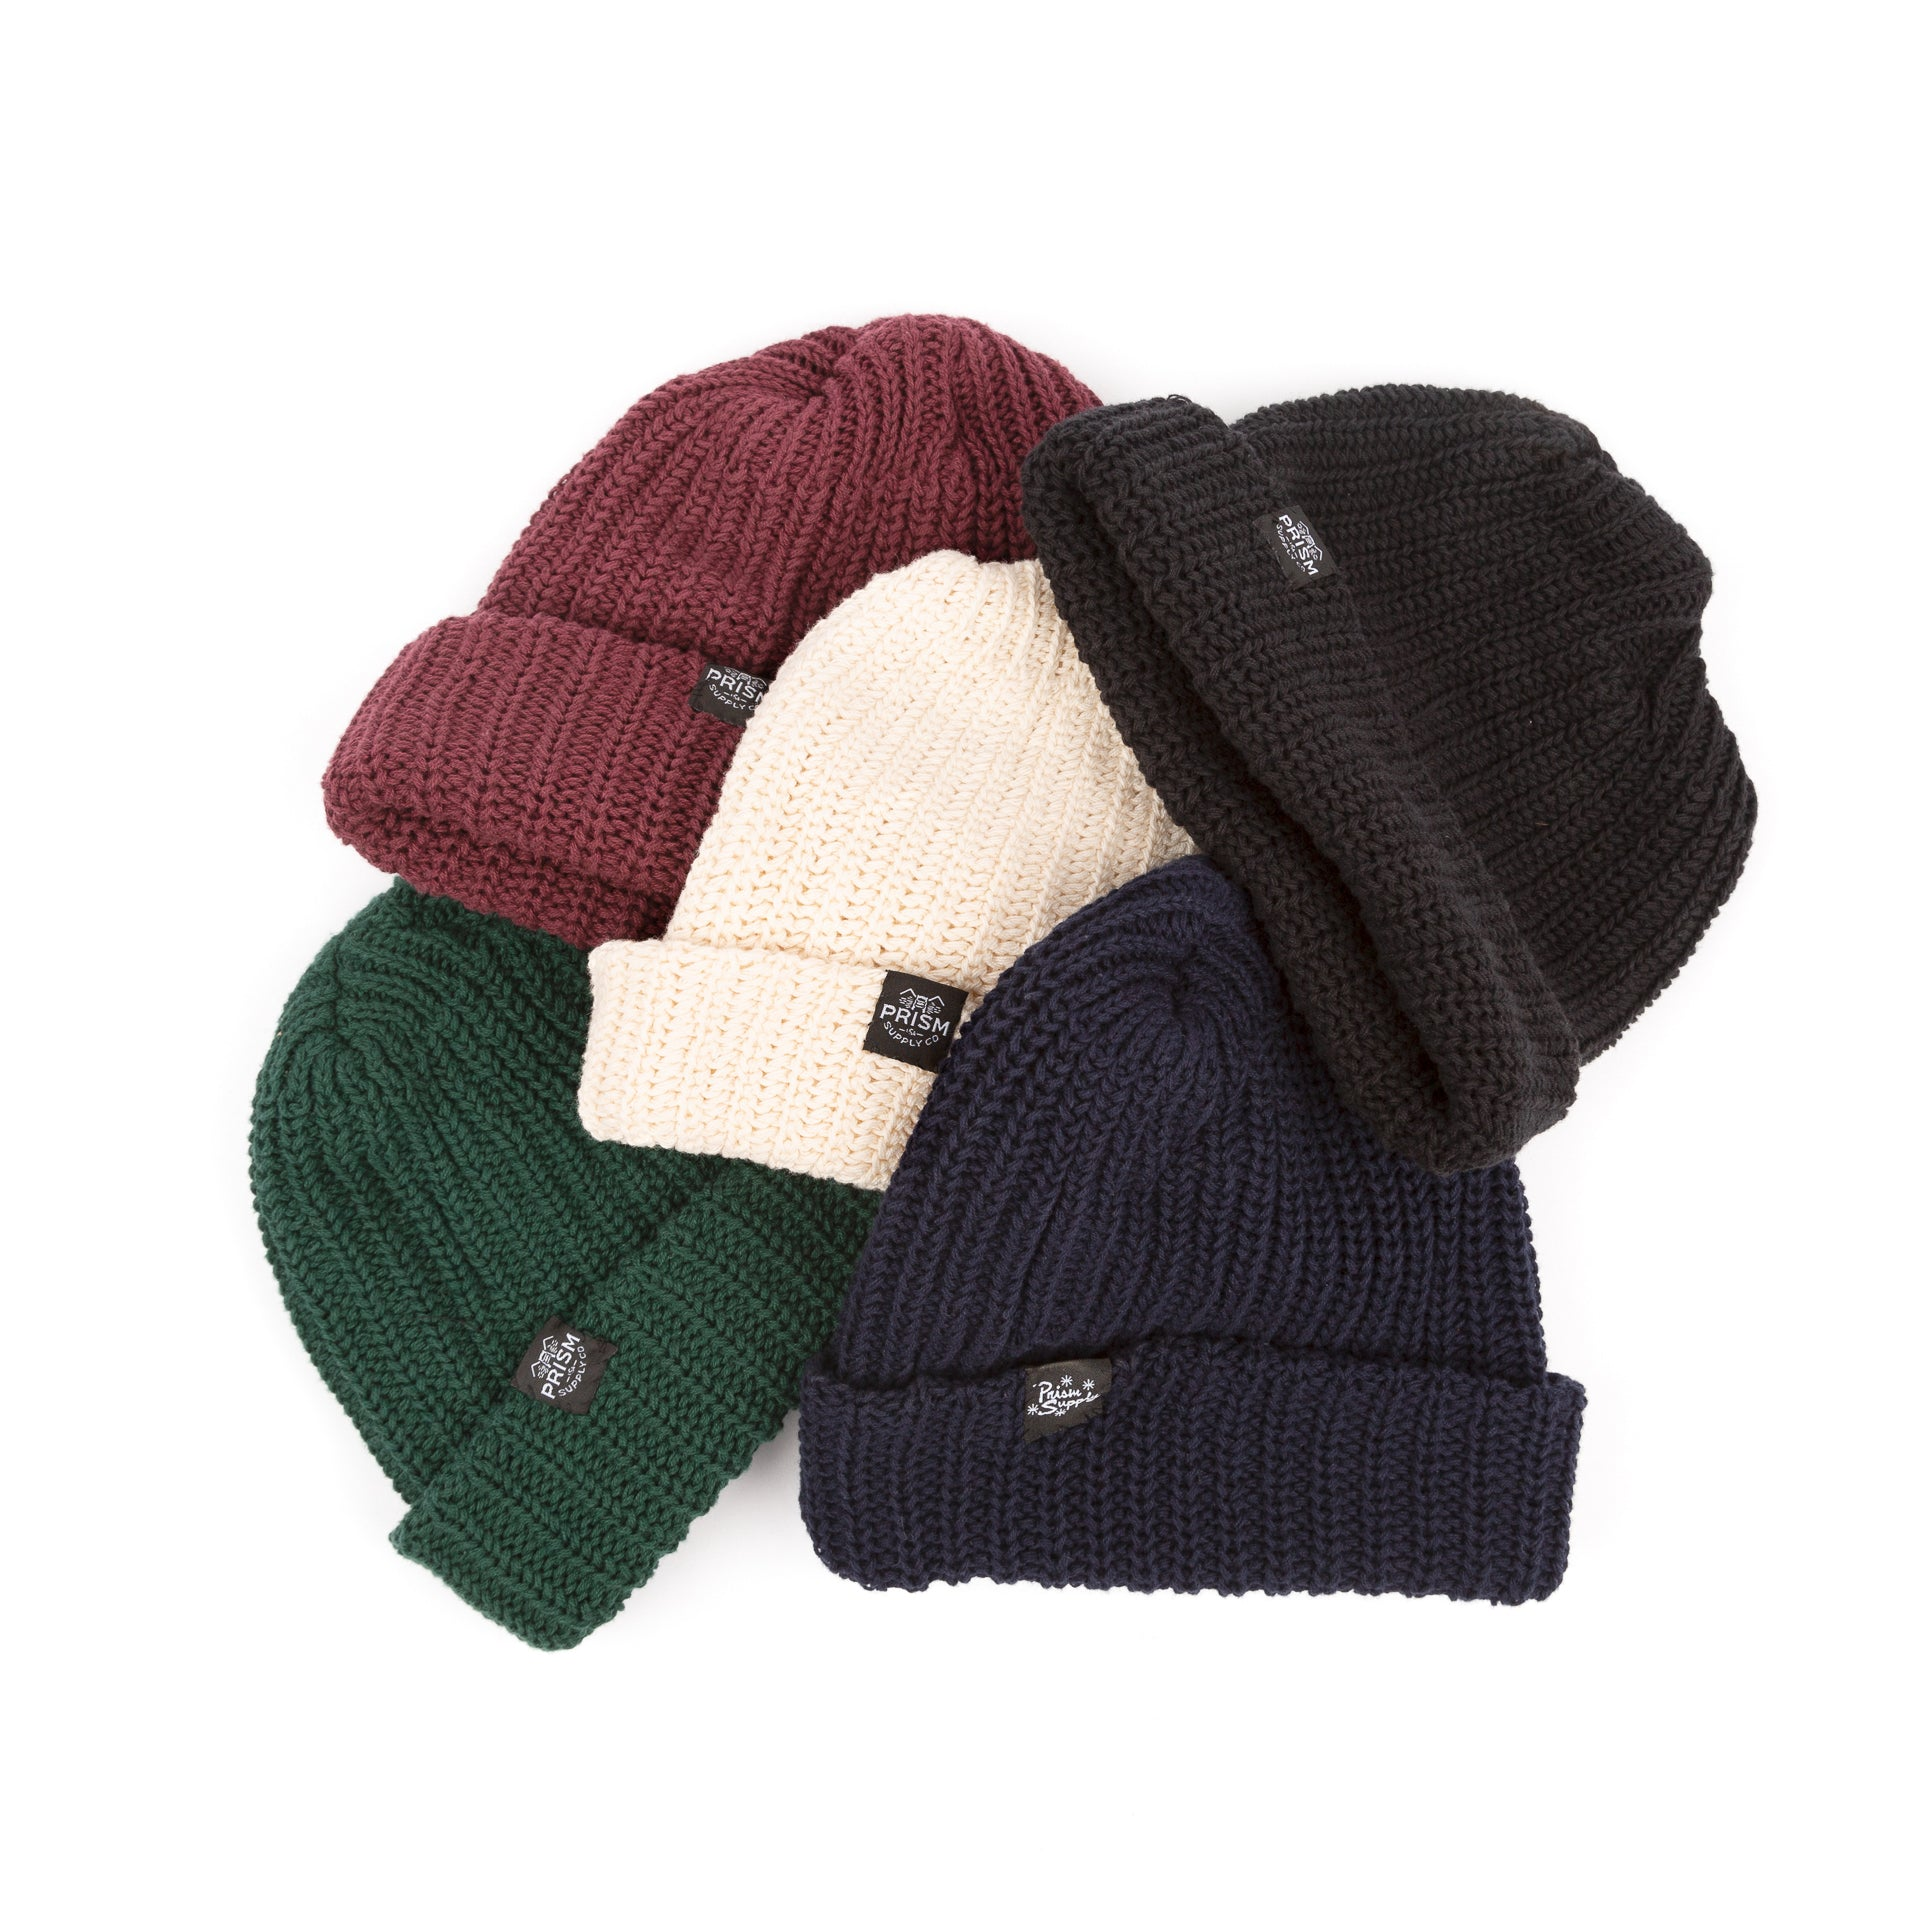 Patrol Beanie - Prism Supply